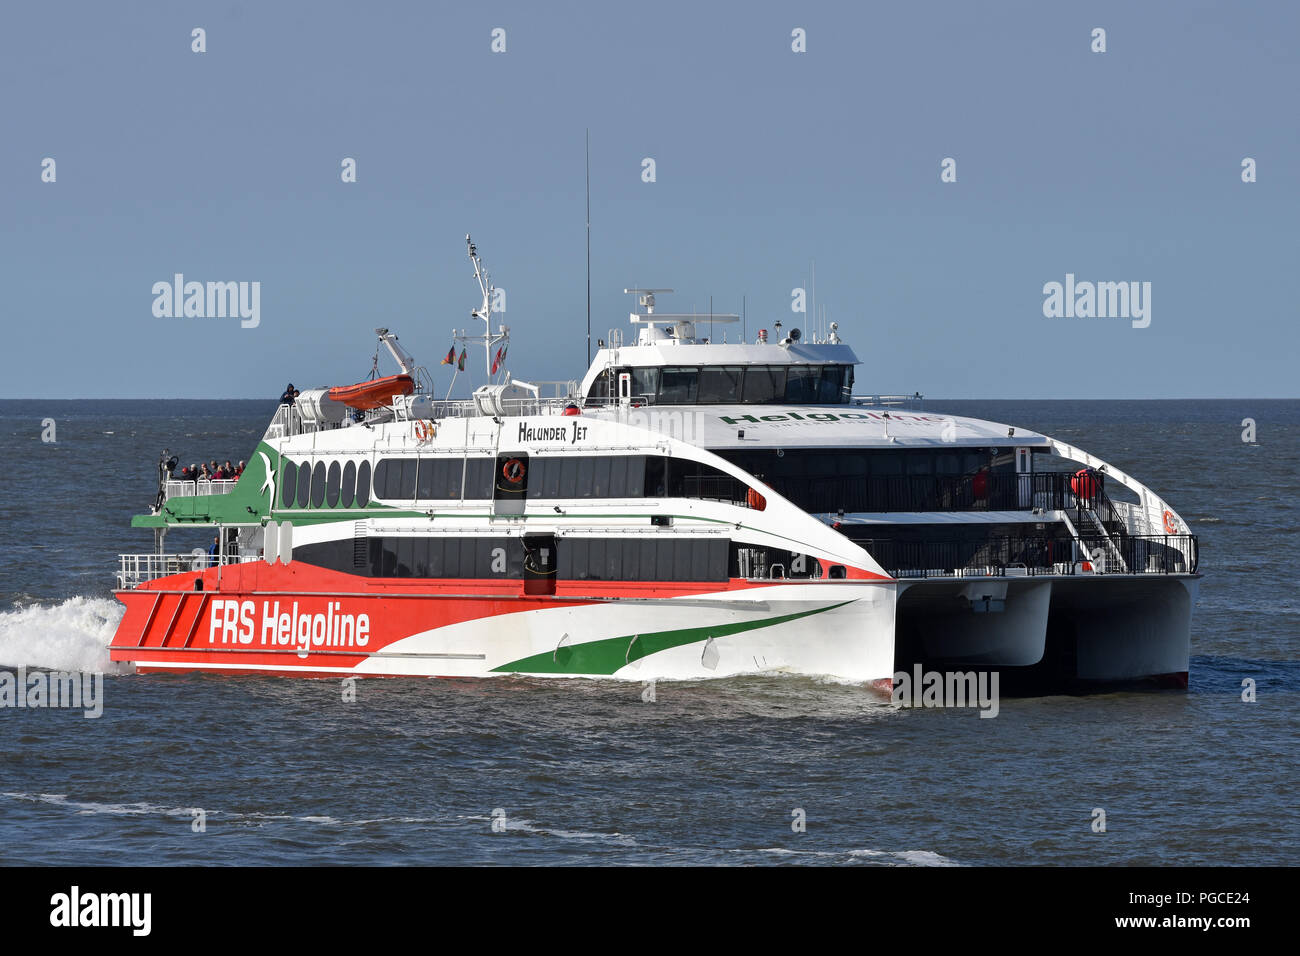 Highspeed-Ferry Halunder Jet returning to Cuxhaven from HelgolandStock Photo